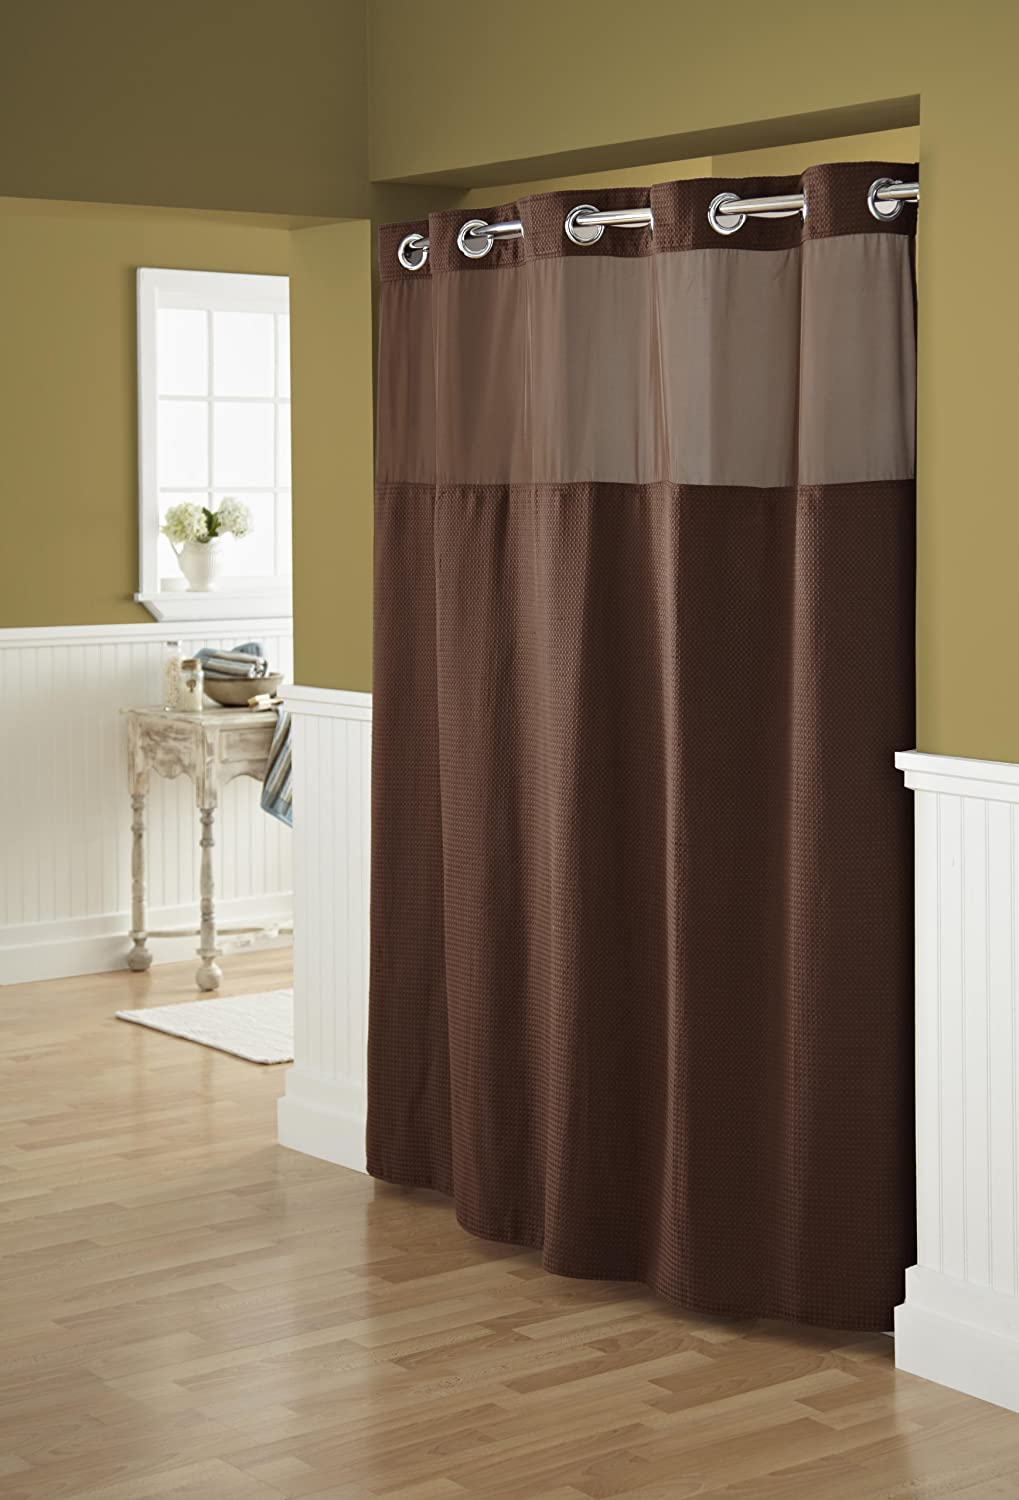 Hookless fabric shower curtain with built in liner taupe diamond pique - Amazon Com Hookless Rbh52d229 Fabric Shower Curtain With Built In Liner Chocolate Brown Home Kitchen